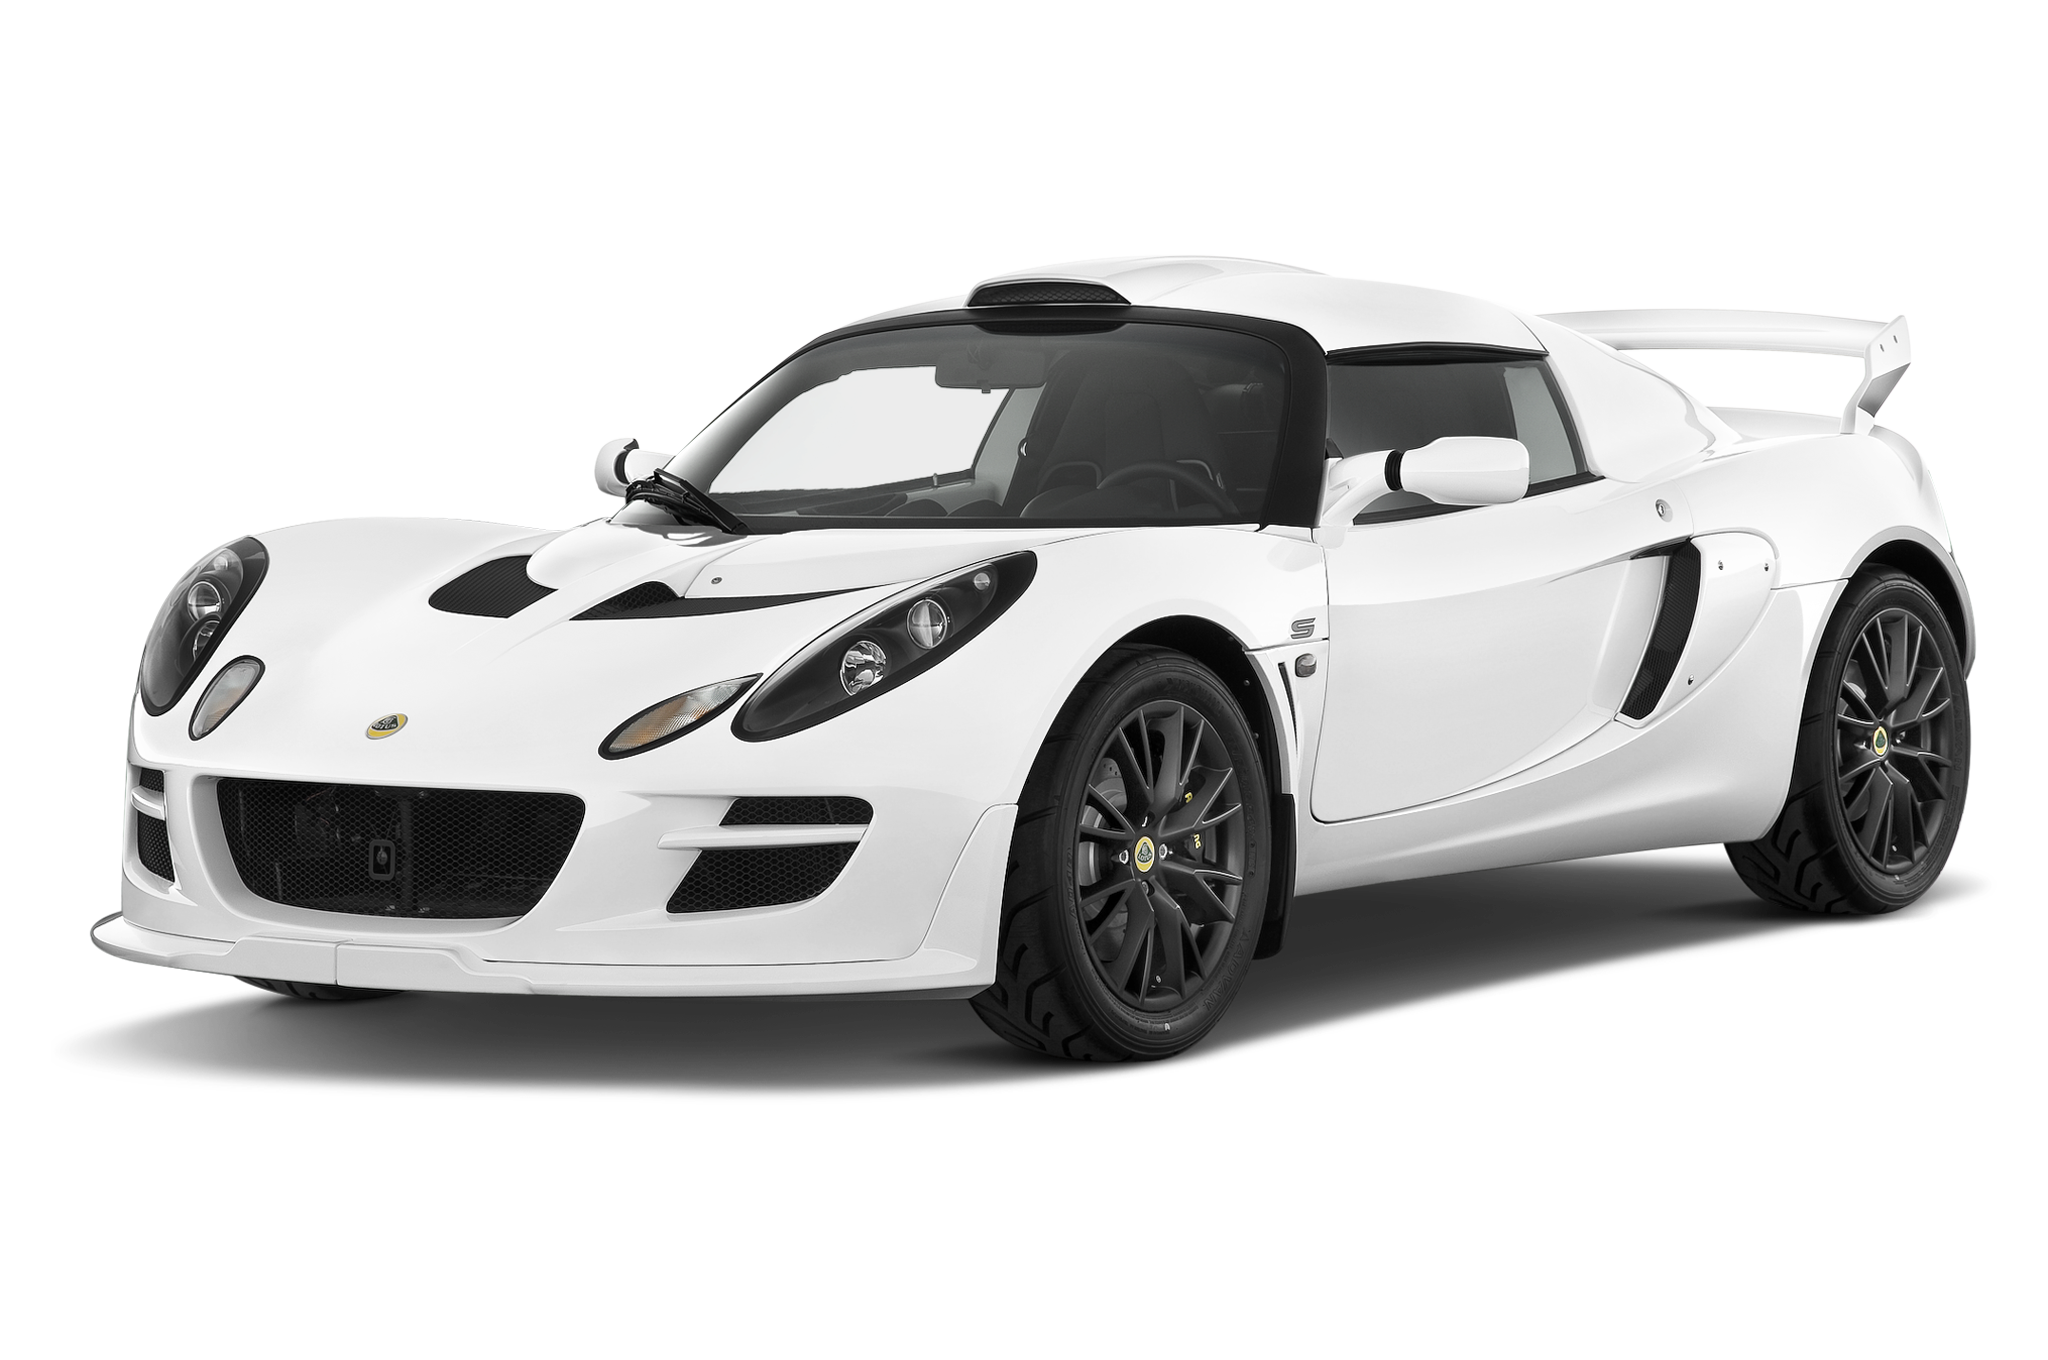 http://st.automobilemag.com/uploads/sites/10/2015/11/2011-lotus-exige-s260-sport-coupe-angular-front.png